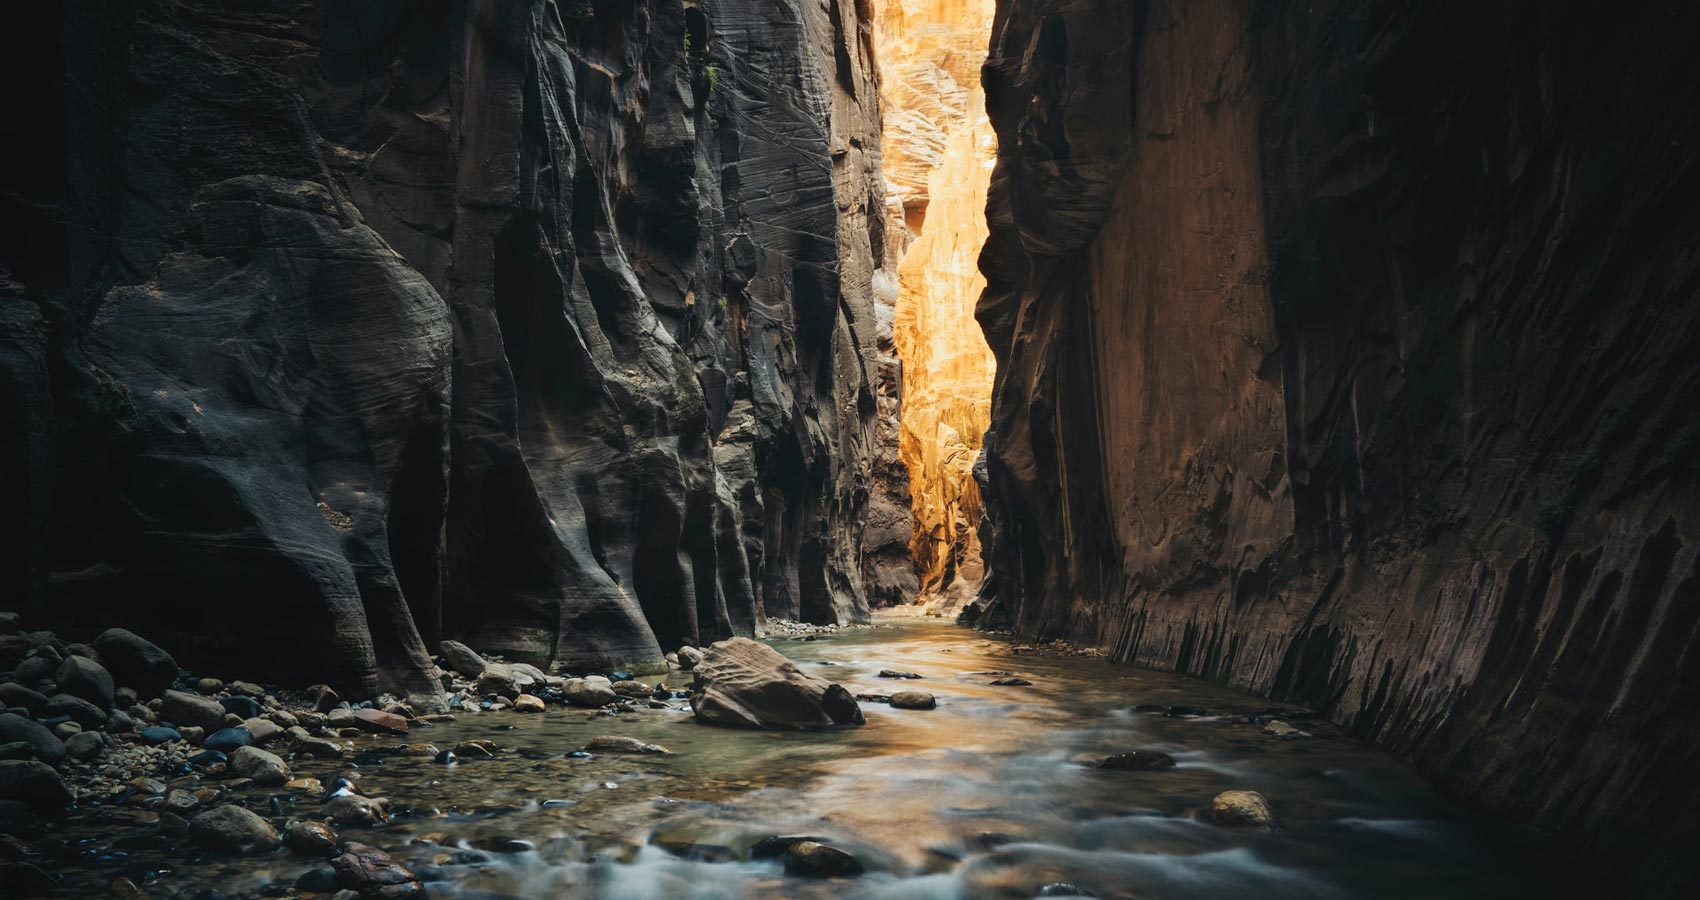 The Narrows, a poem written by Huntersjames at Spillwords.com